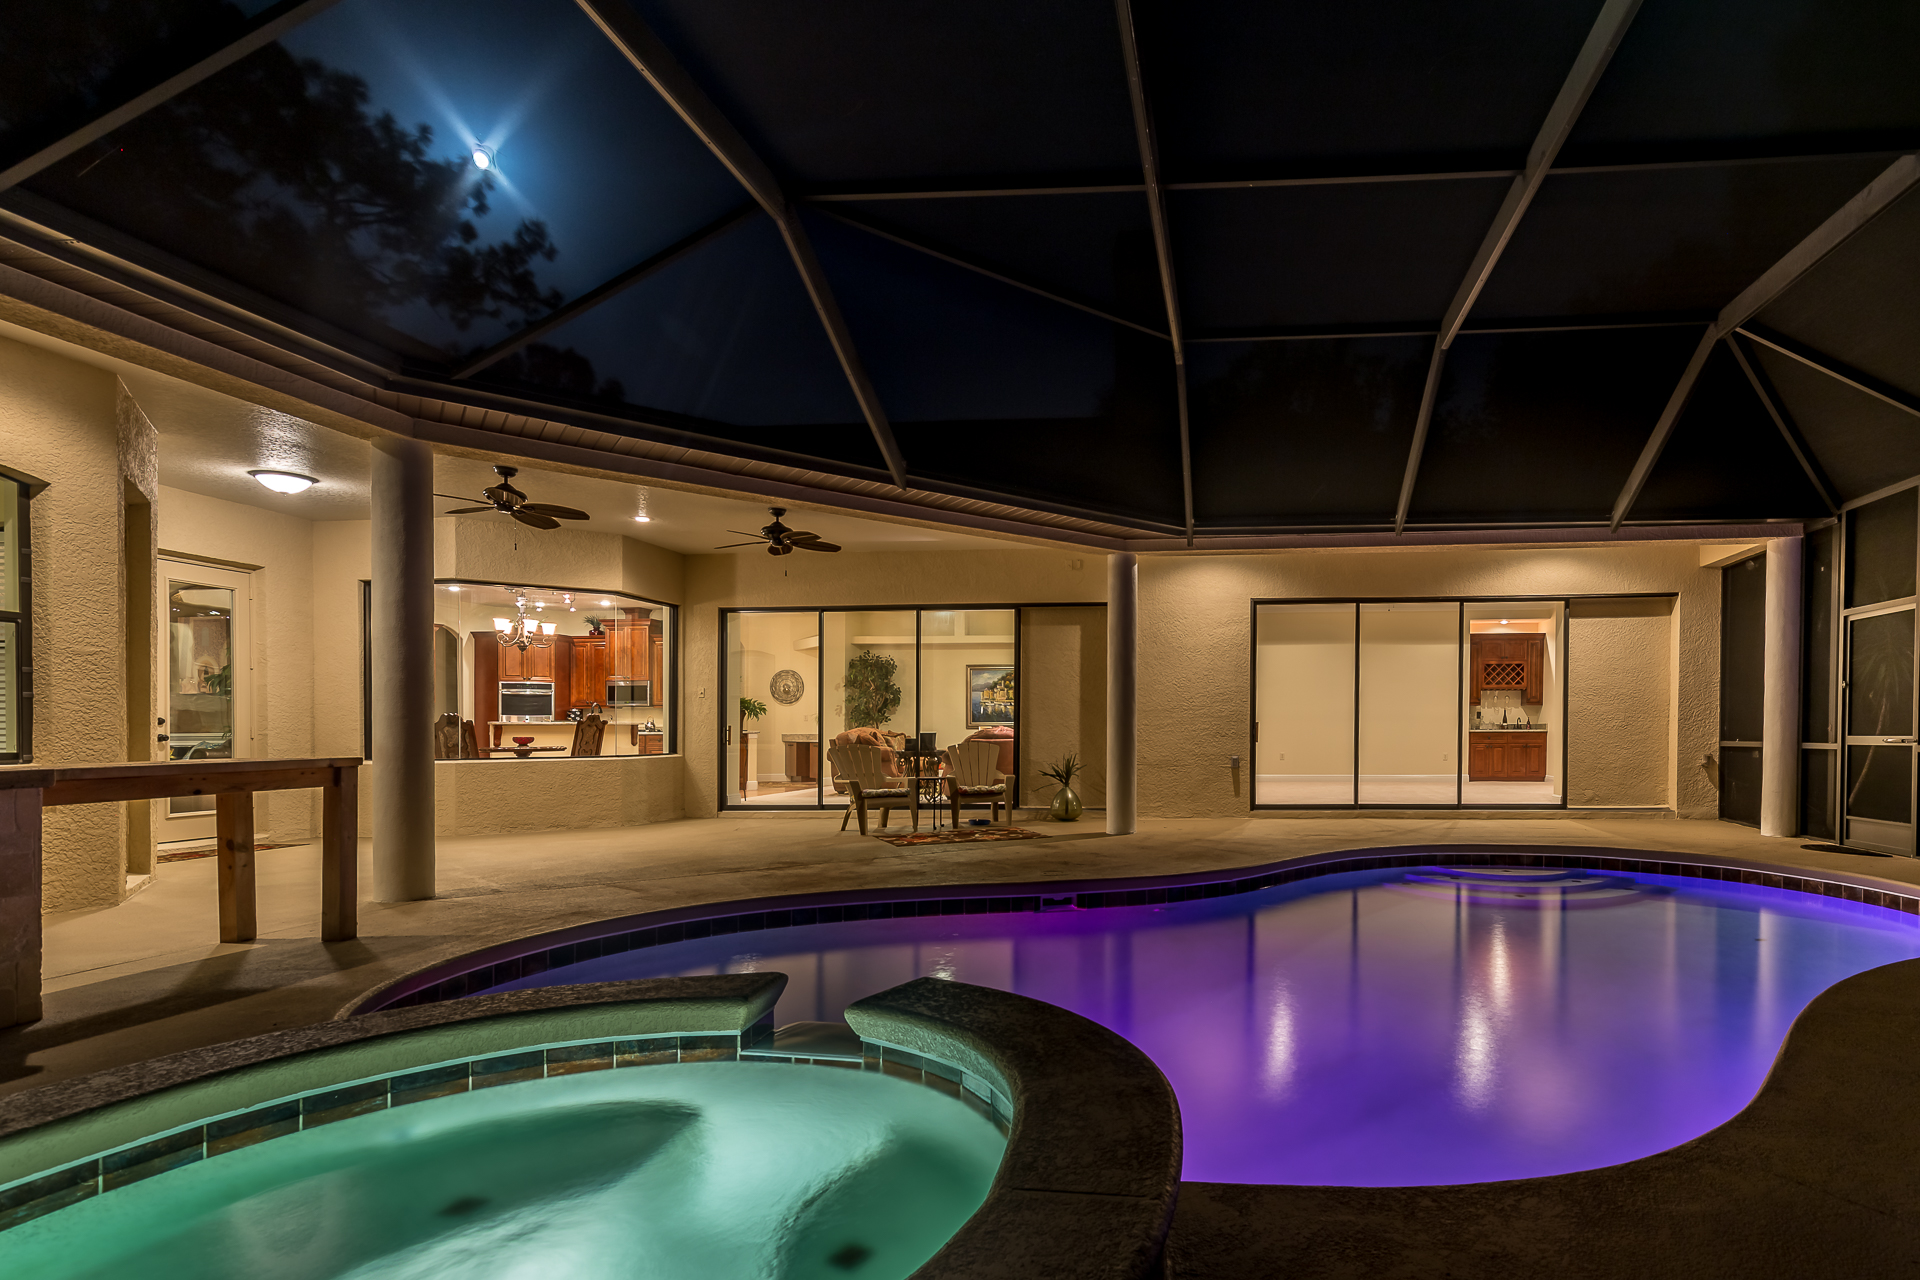 Twilight:$150+ - Make your listings unique with our signature lighting and editing techniques. Excellent way to show off pools and views. Limited availability and advance notice required.